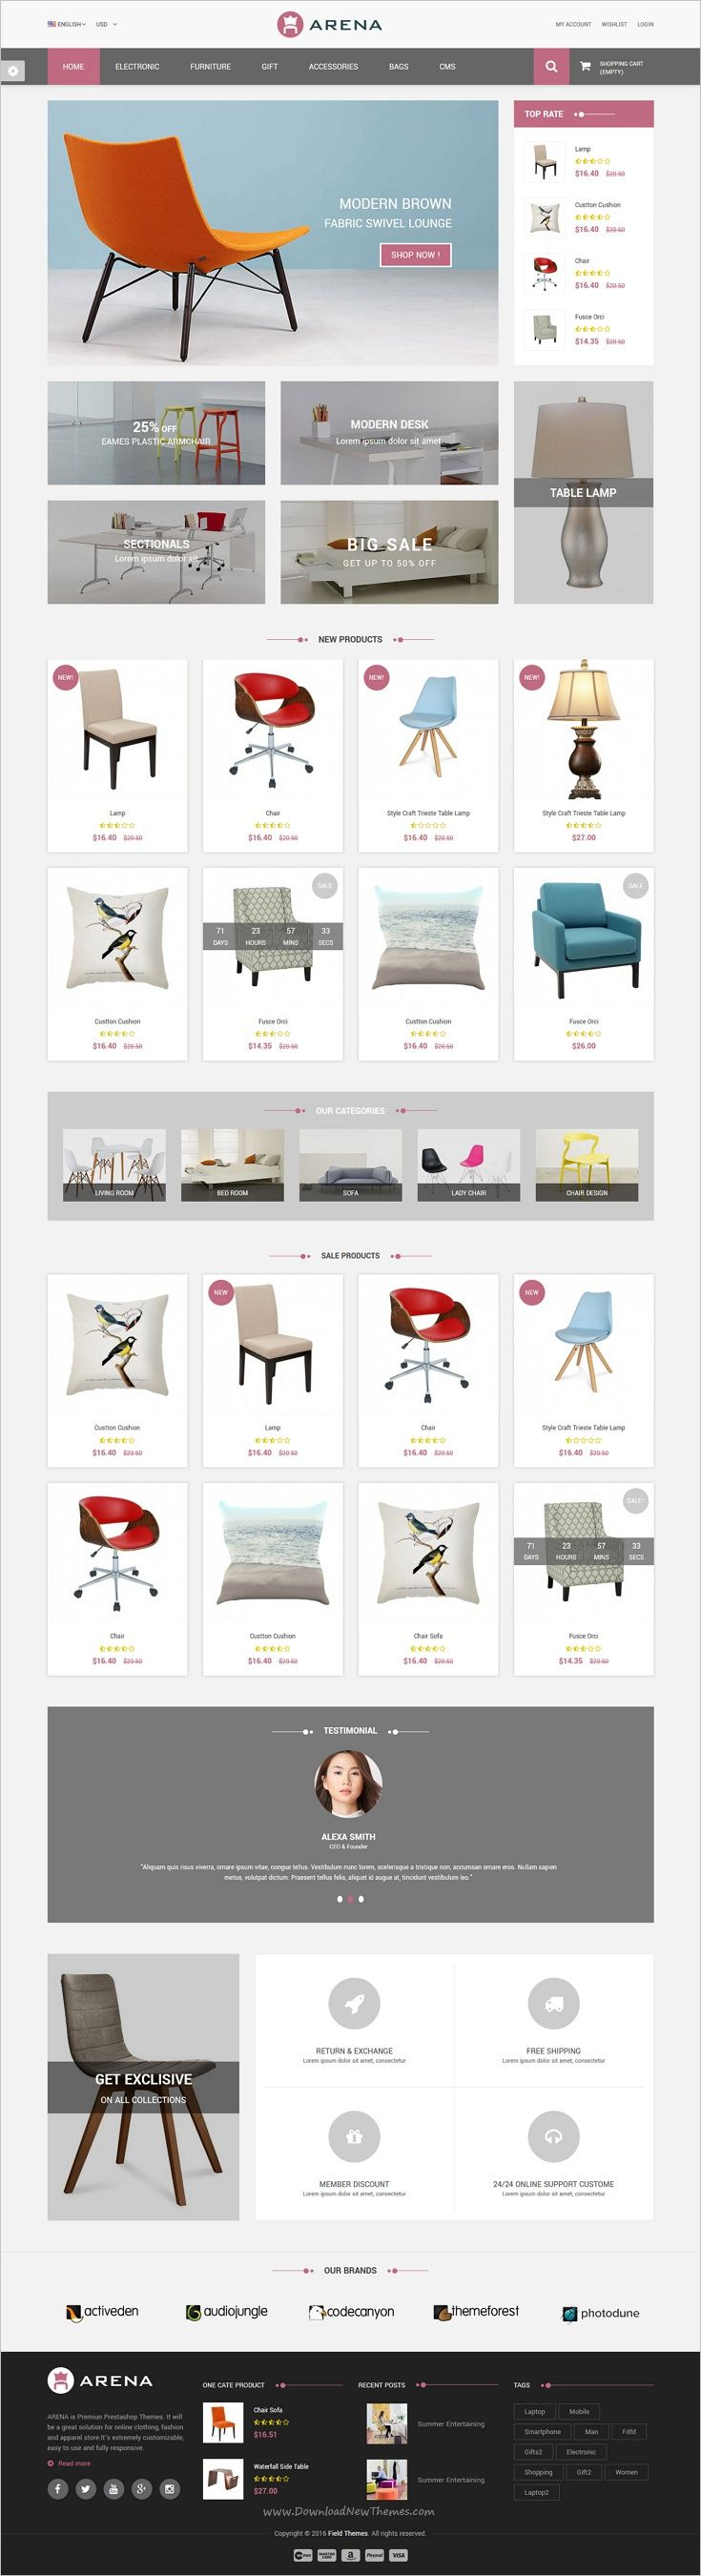 Arena is a wonderful responsive 4in1 #Prestashop theme for stunning #furniture #shop eCommerce website download now➩ https://themeforest.net/item/arena-responsive-prestashop-theme/19000125?ref=Datasata